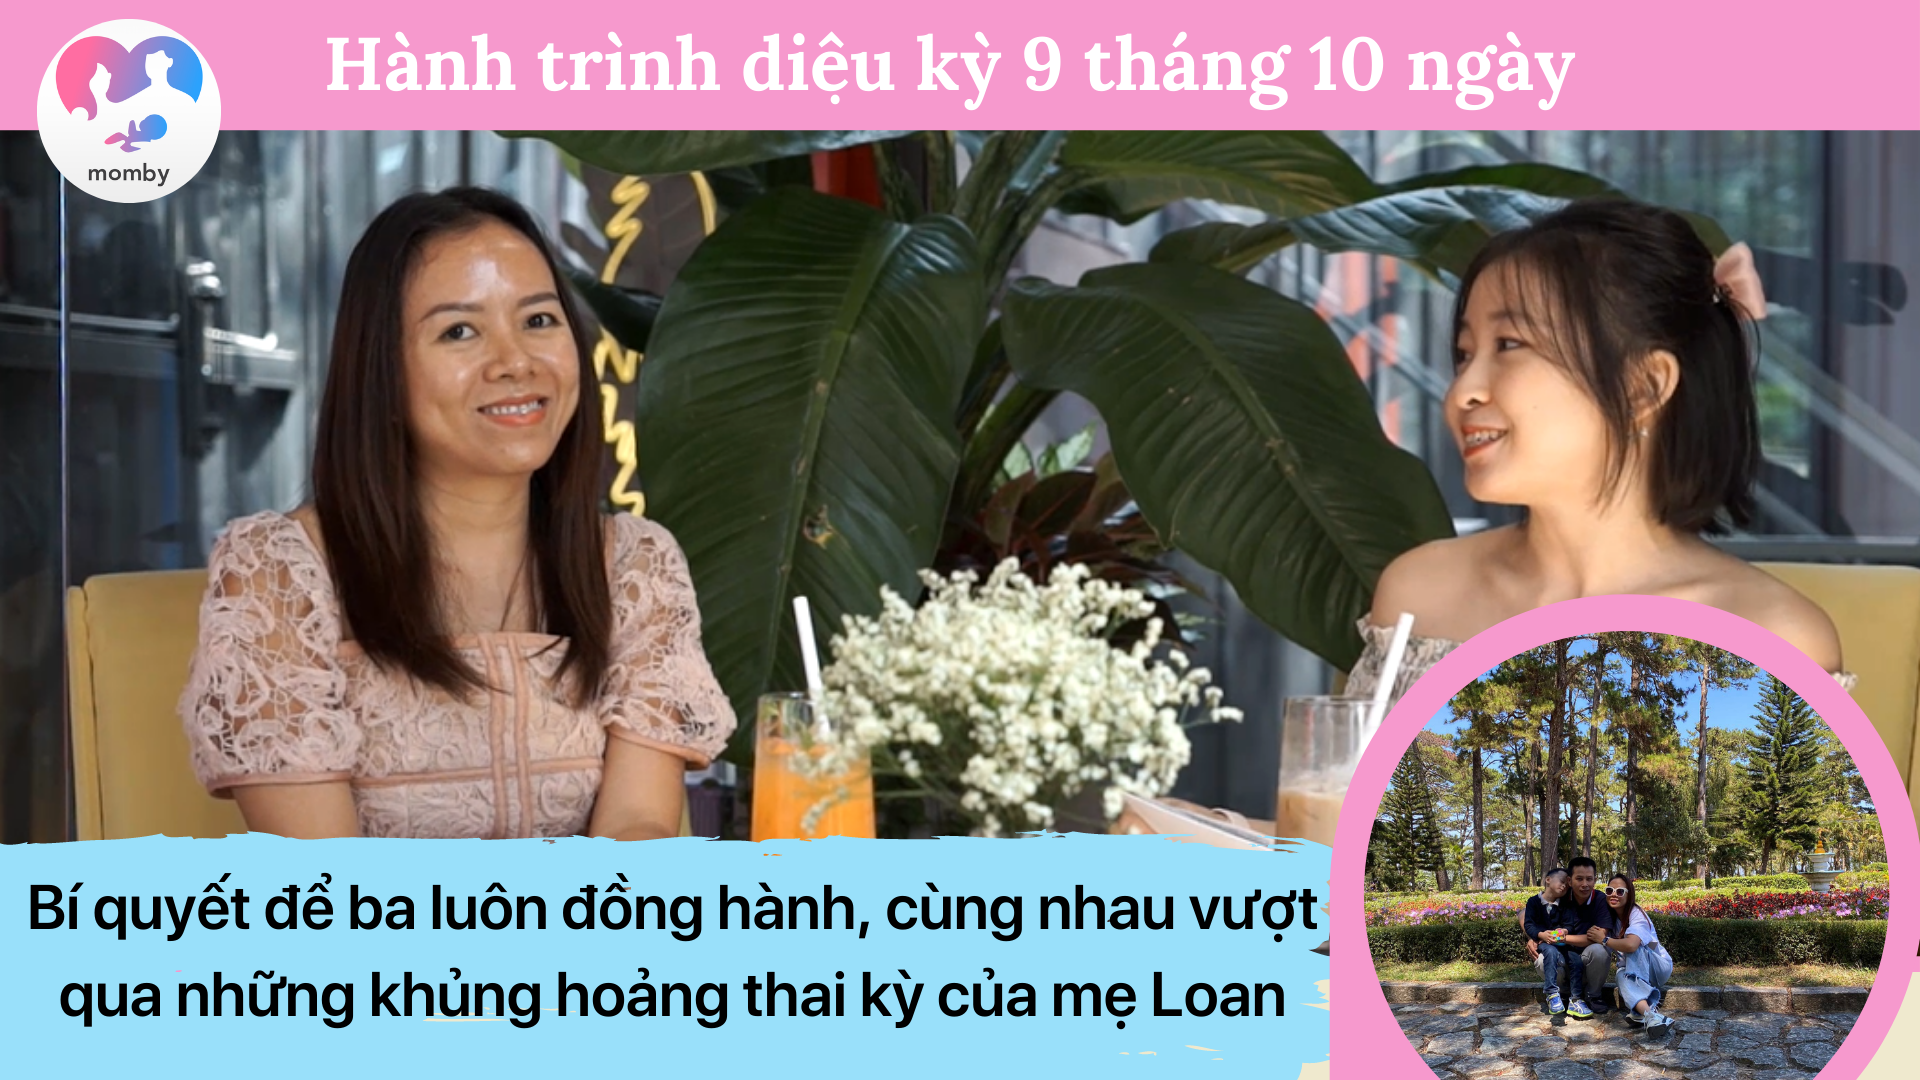 https://momby.net/wp-content/uploads/2021/05/Phỏng-vấn-mẹ-Loan-1.png